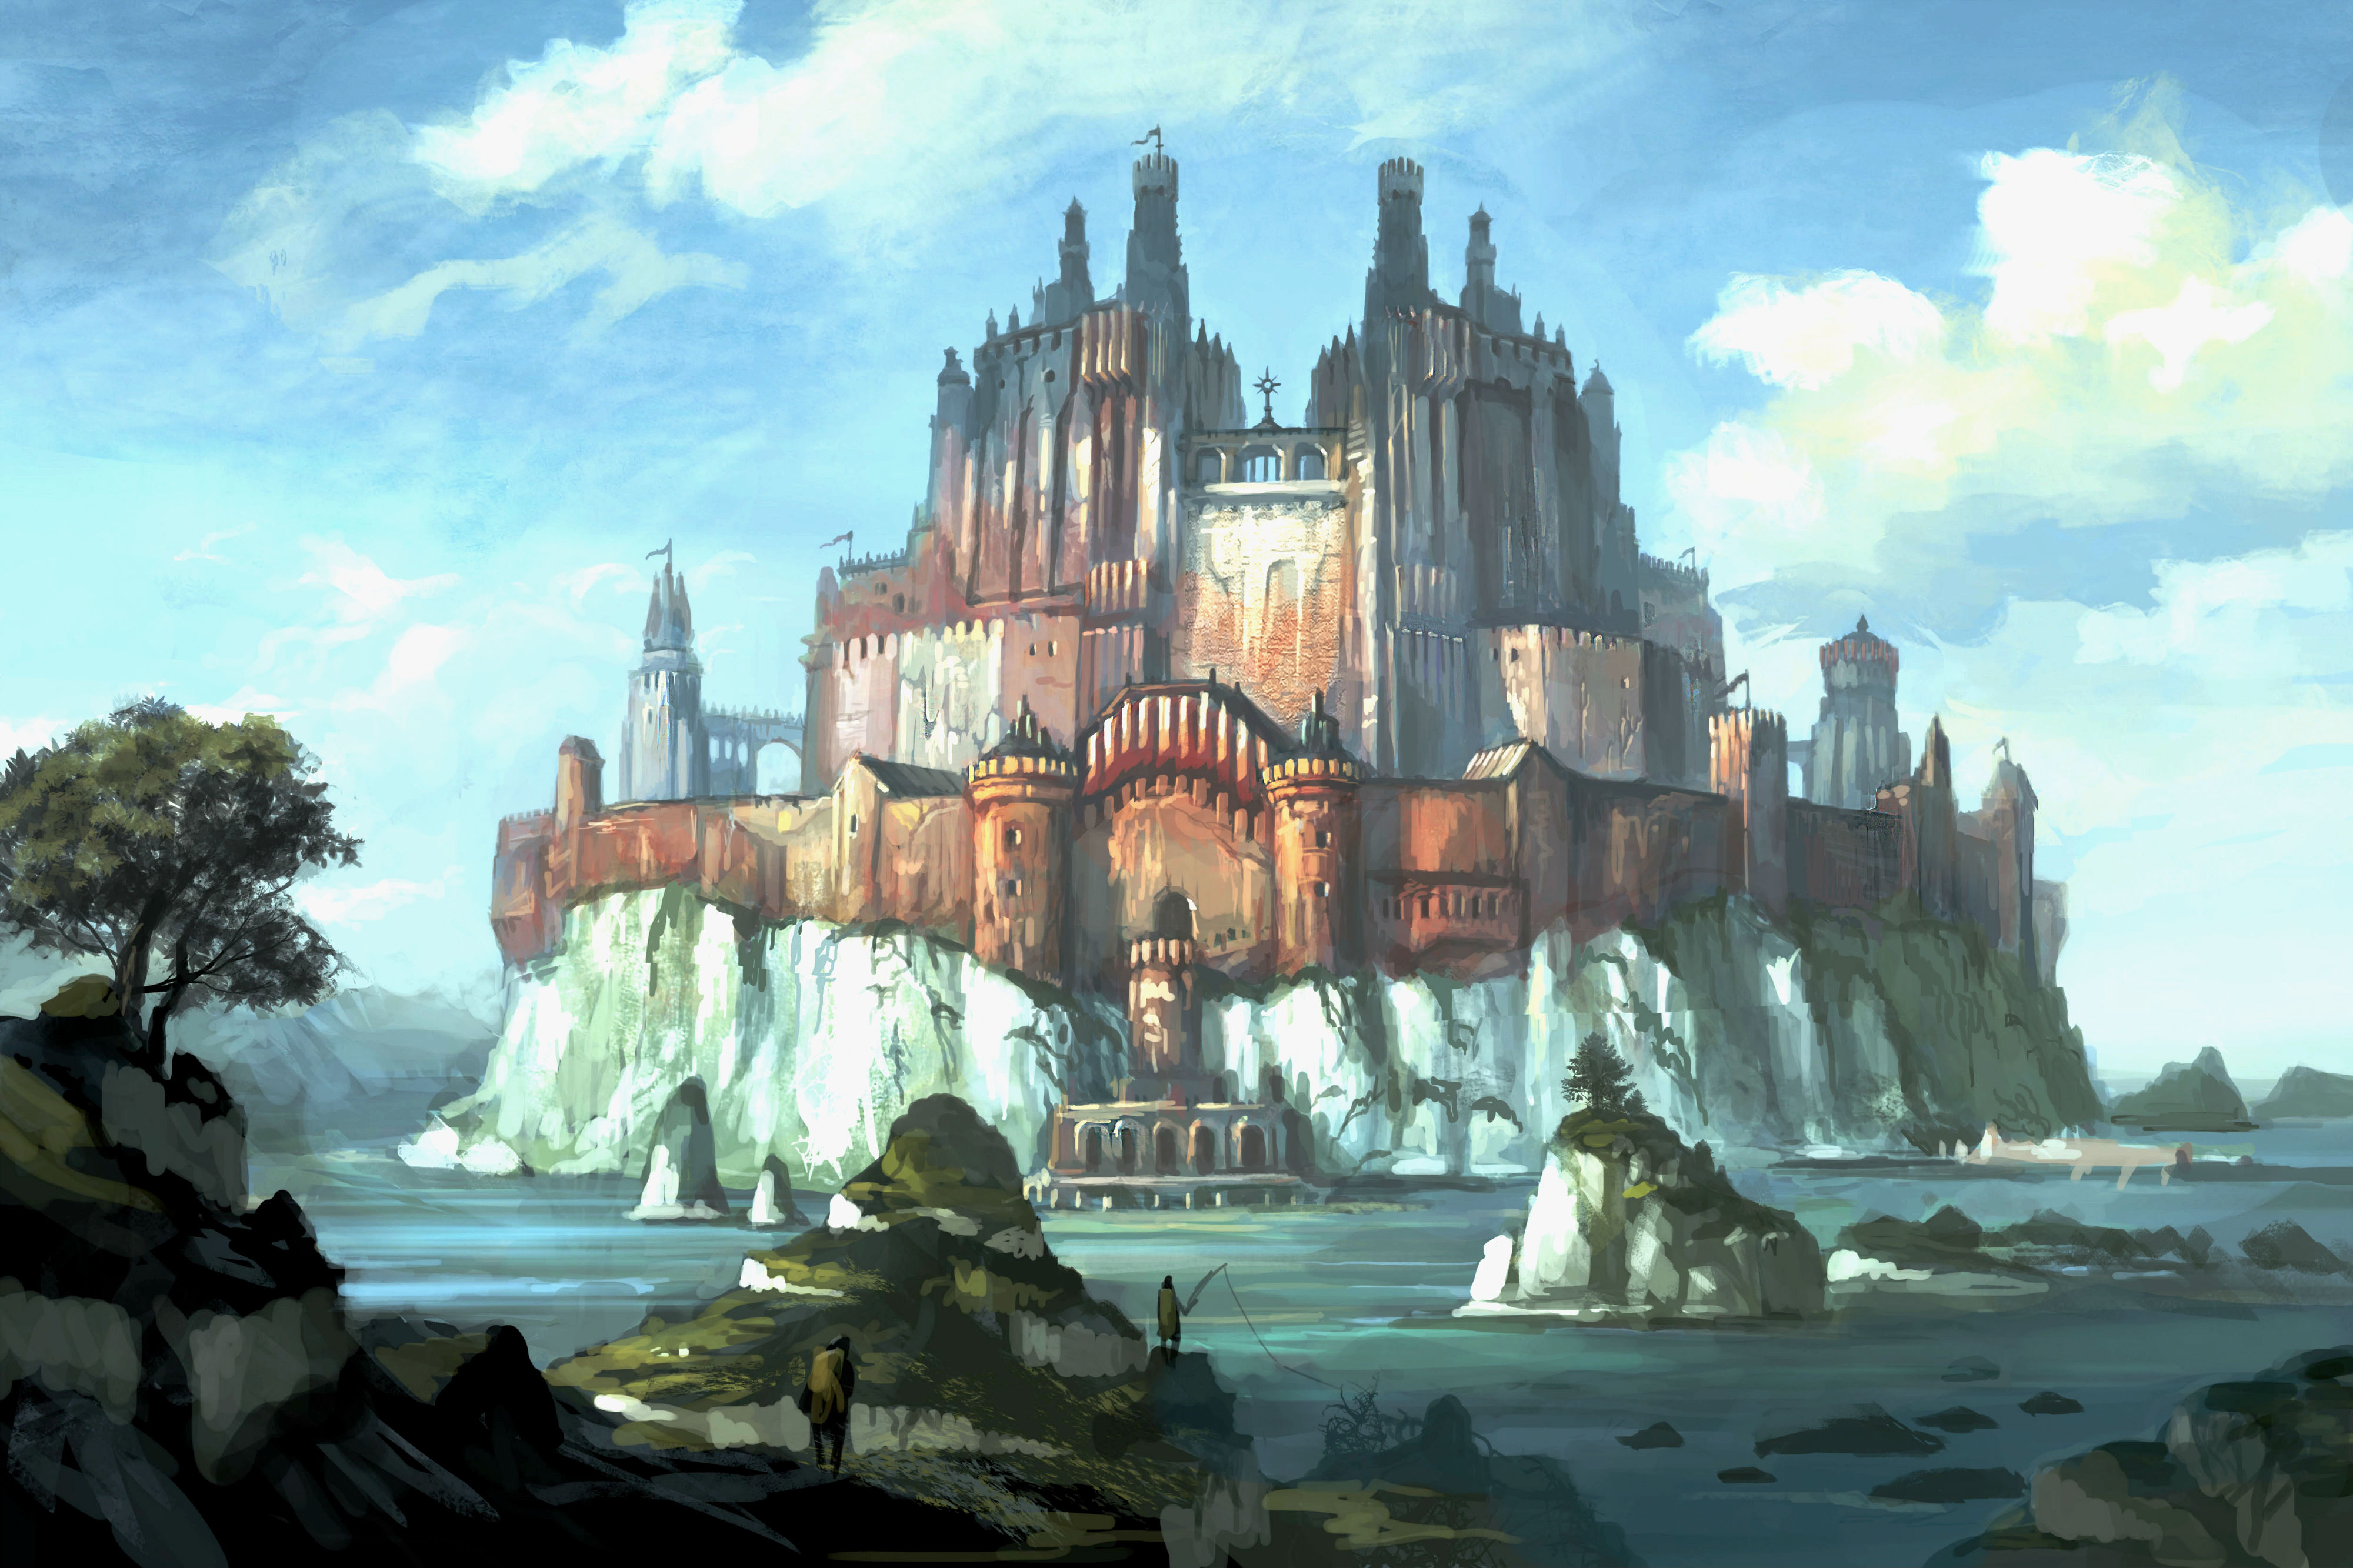 Fantasy - Castle  City Scenic Wallpaper